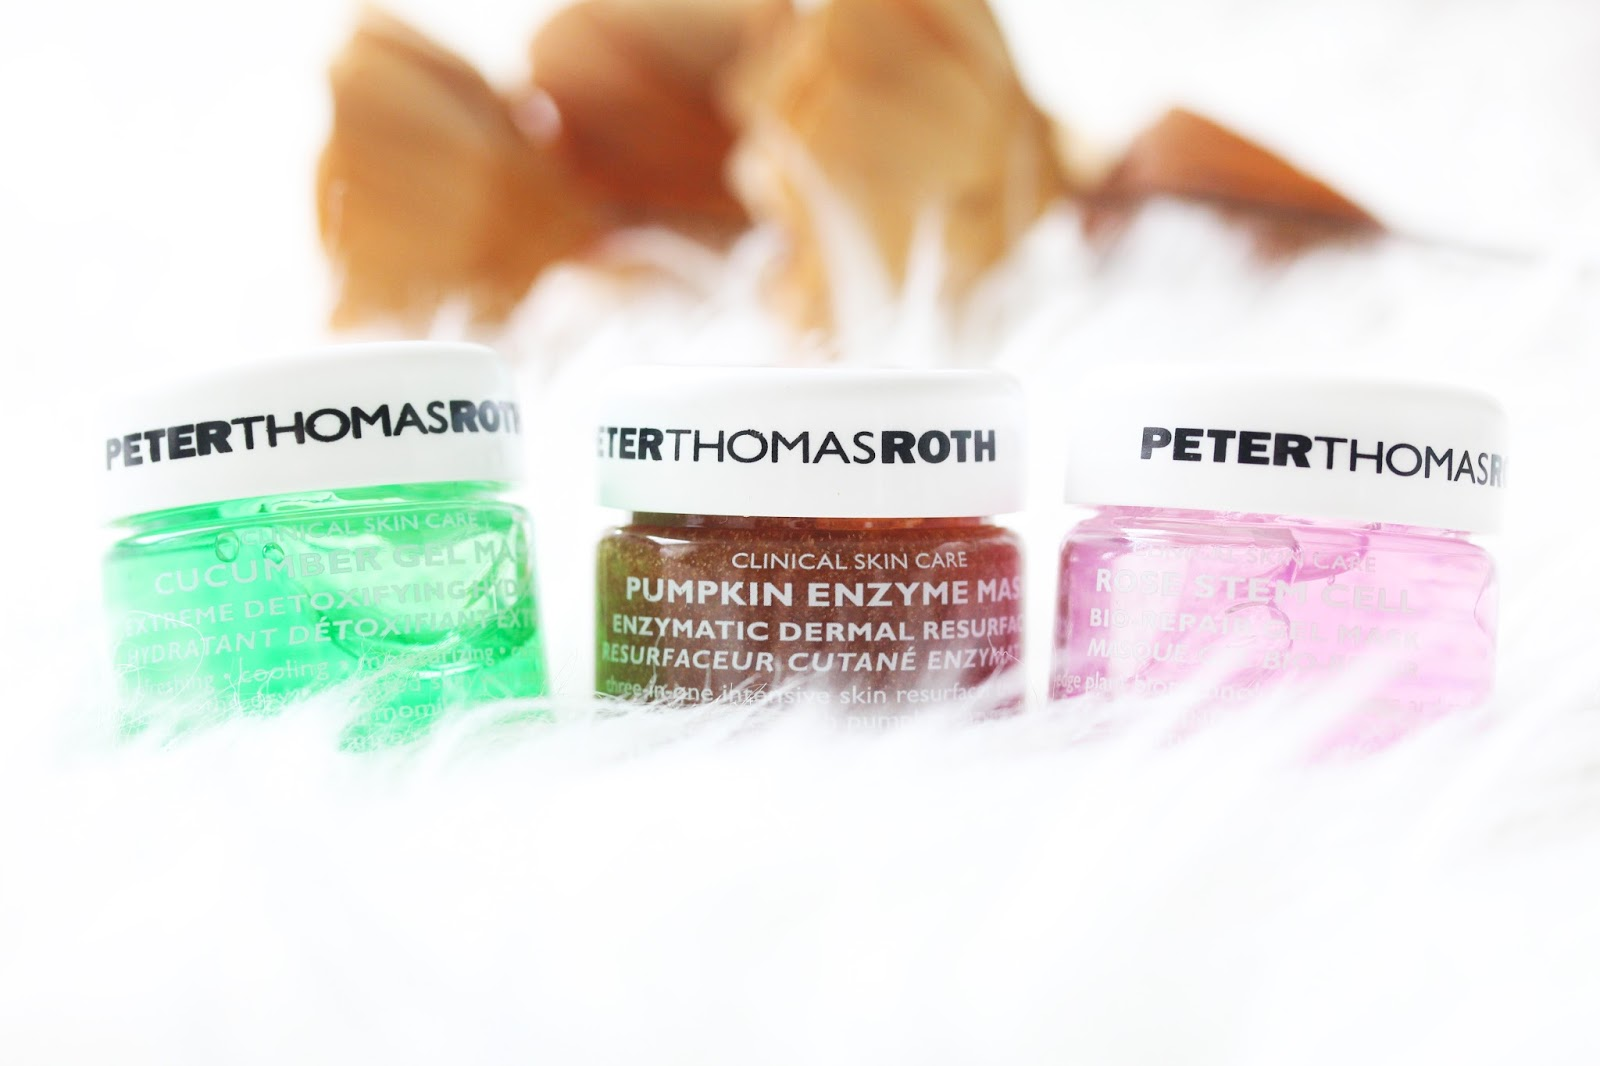 peter thomas roth face masks